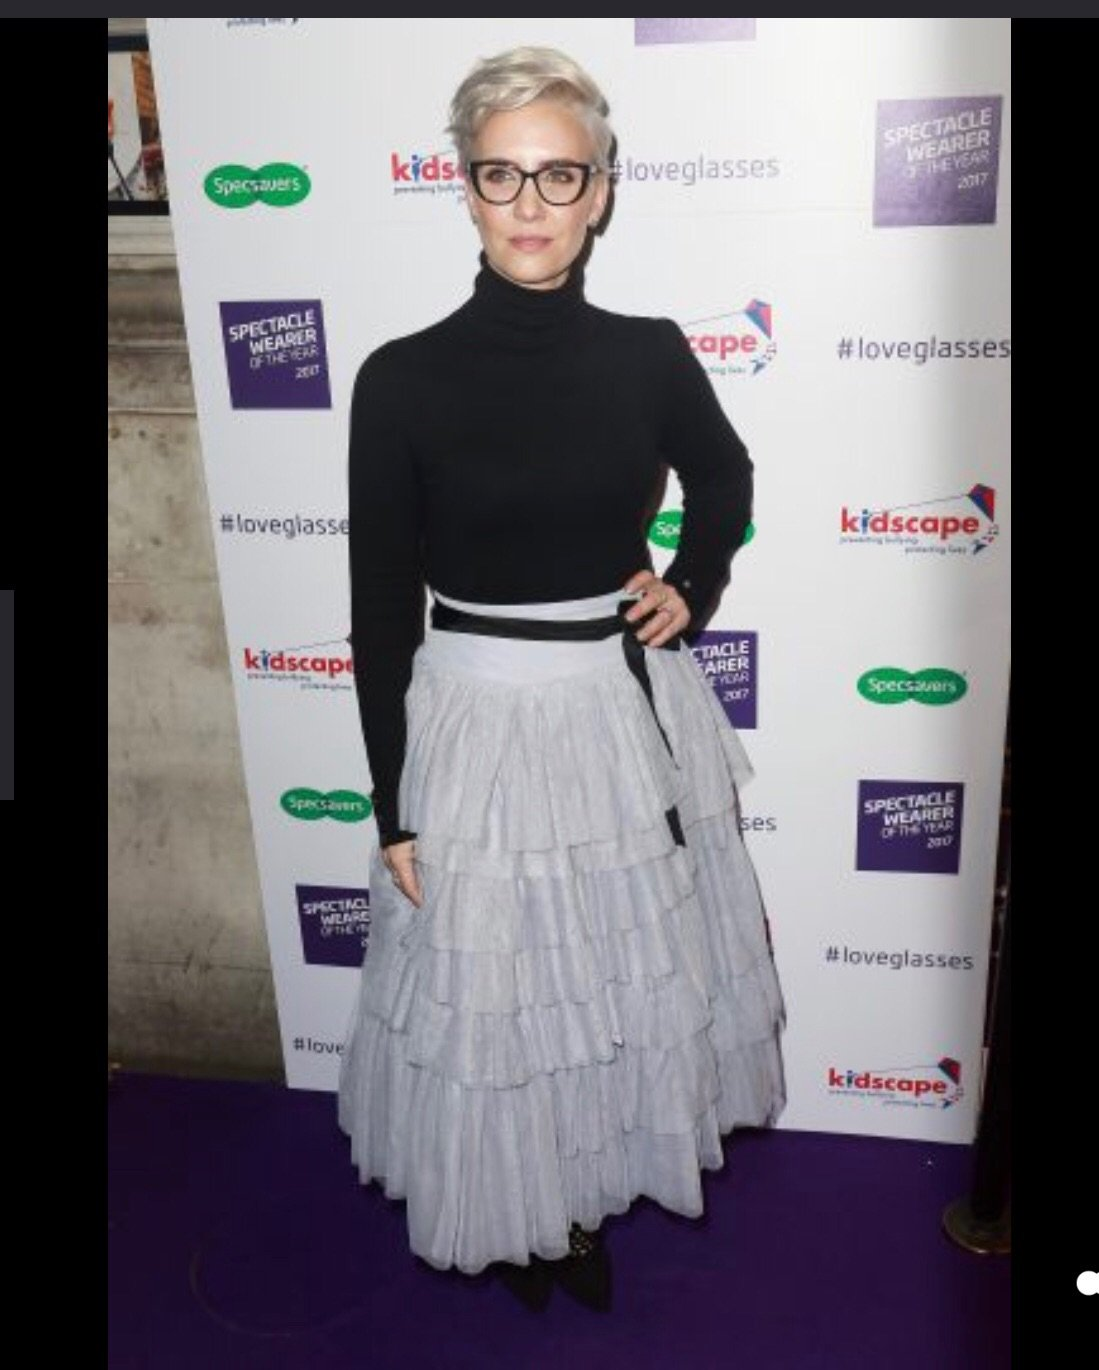 For those of you asking about my outfit from last nights @specsavers awards in aid o.... https://t.co/CUHa3A28D0 https://t.co/cTn4yfpQnX